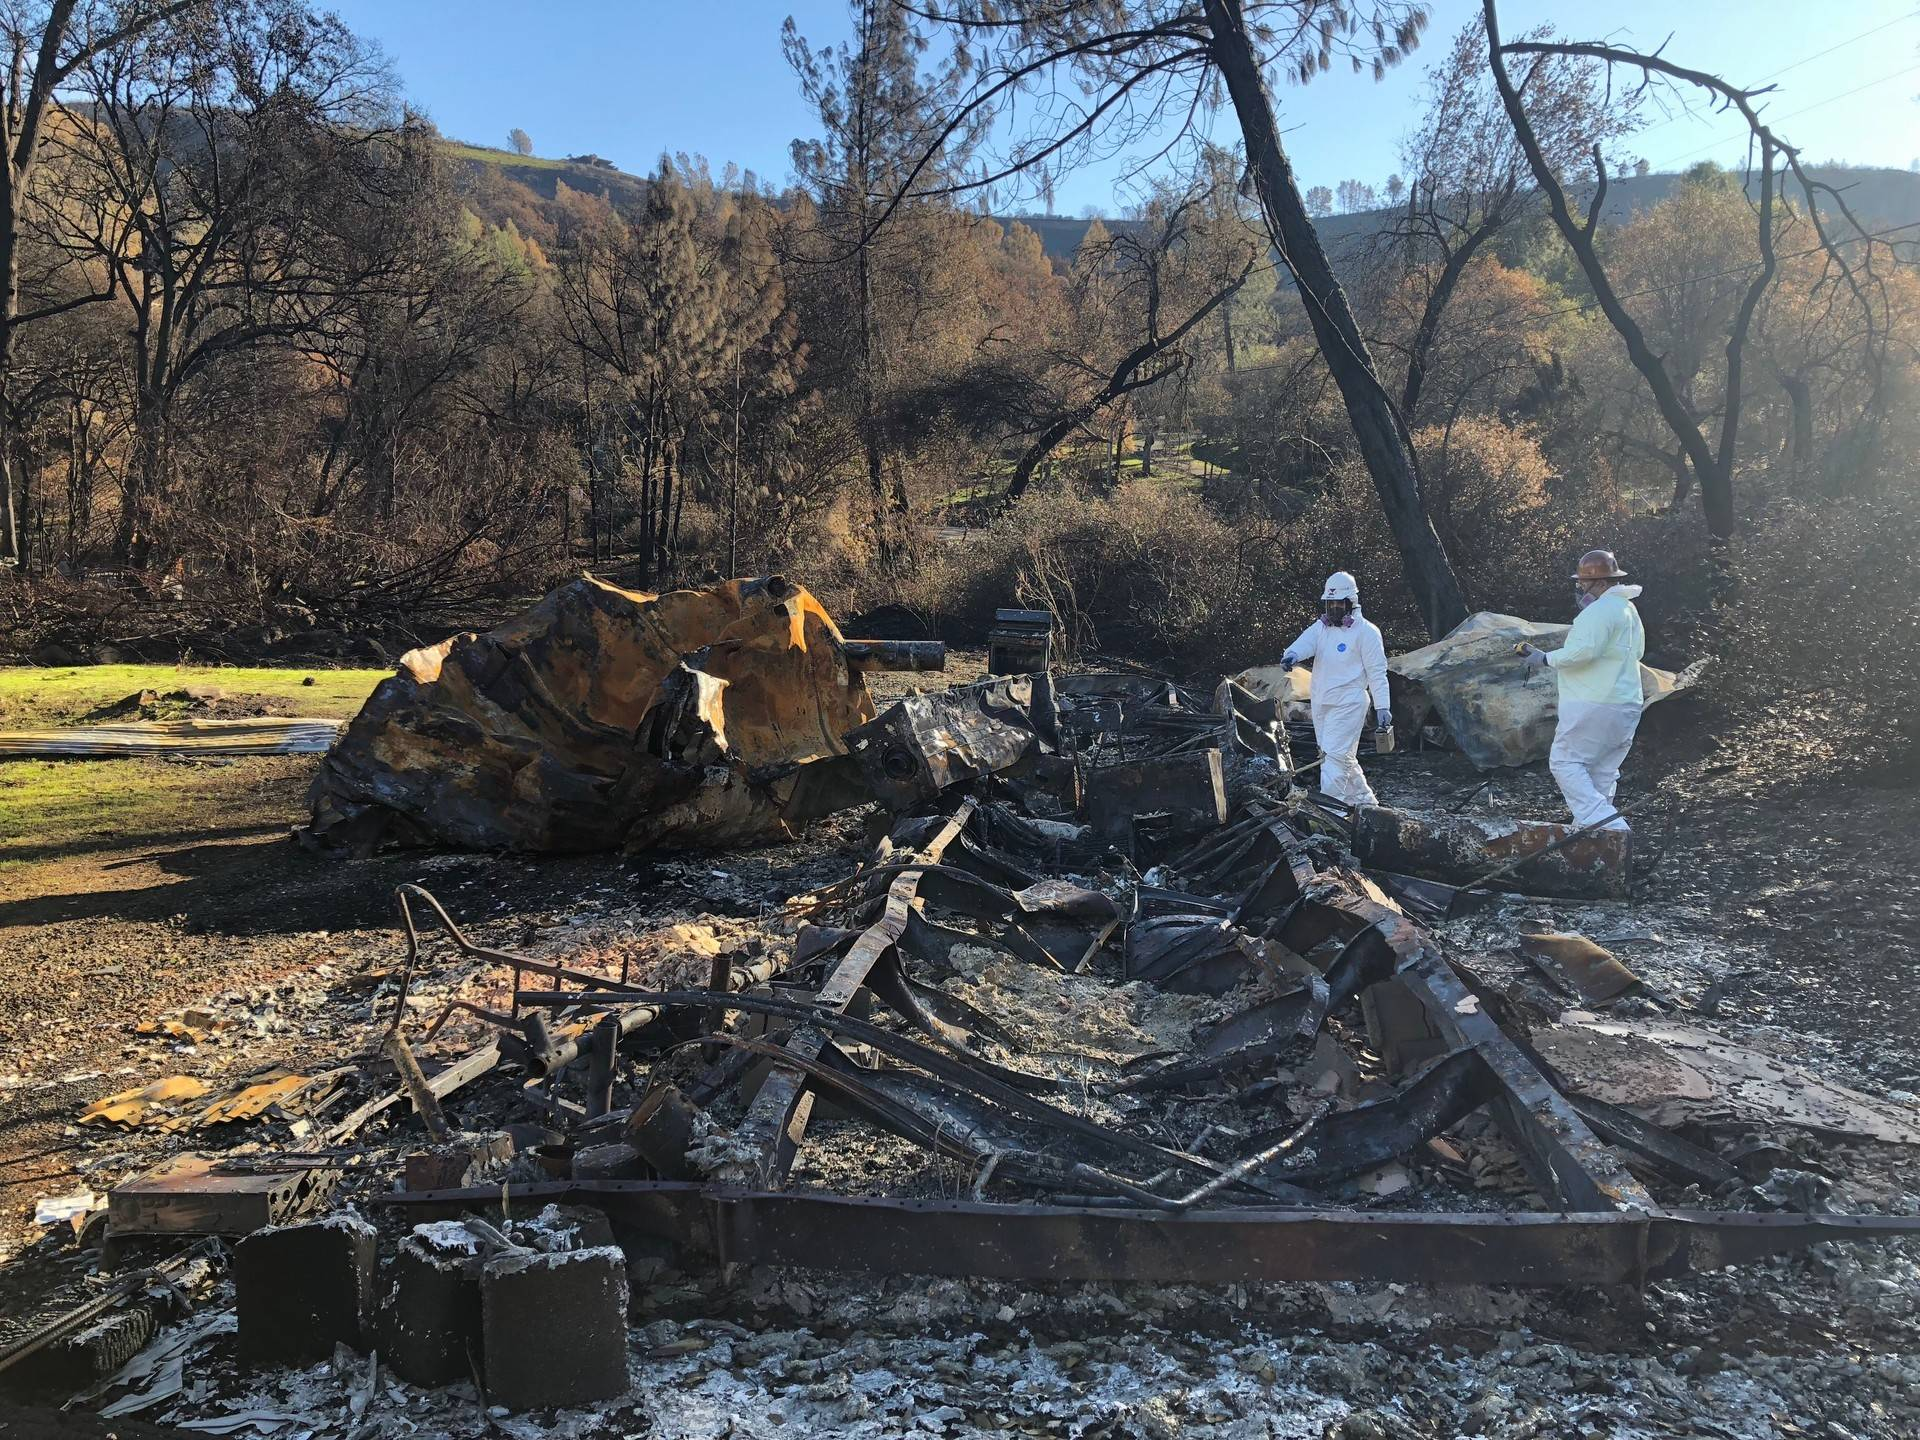 EPA workers use a radiation detector and multi-gas meter to search for hazardous waste in a mobile home destroyed by the Camp Fire. Sonja Hutson/KQED